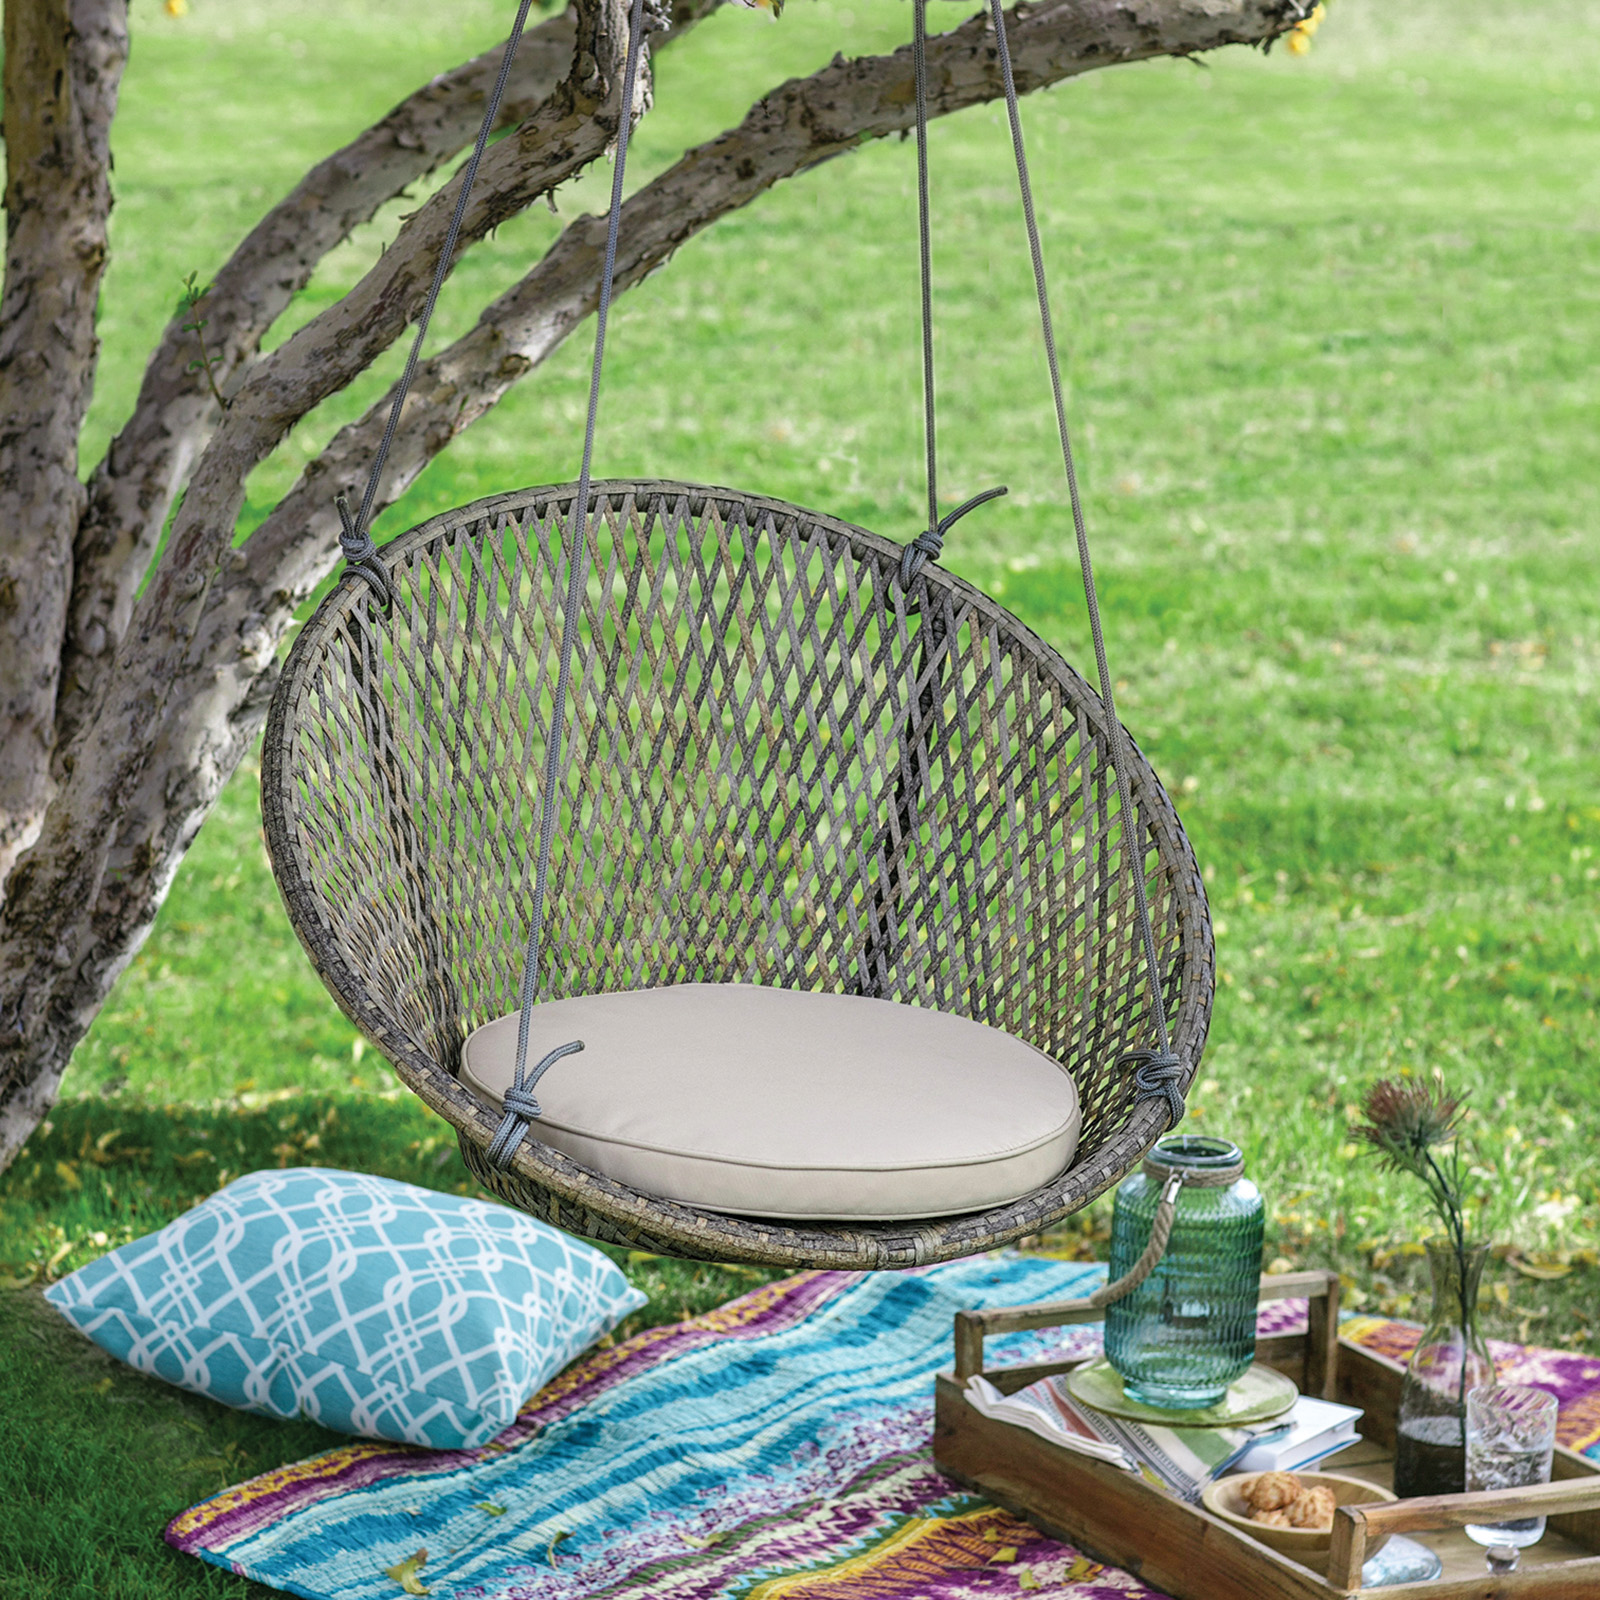 island bay saria resin wicker single hanging swing chair with seat pad hanging chairs   indoor  u0026 outdoor   hayneedle  rh   hayneedle